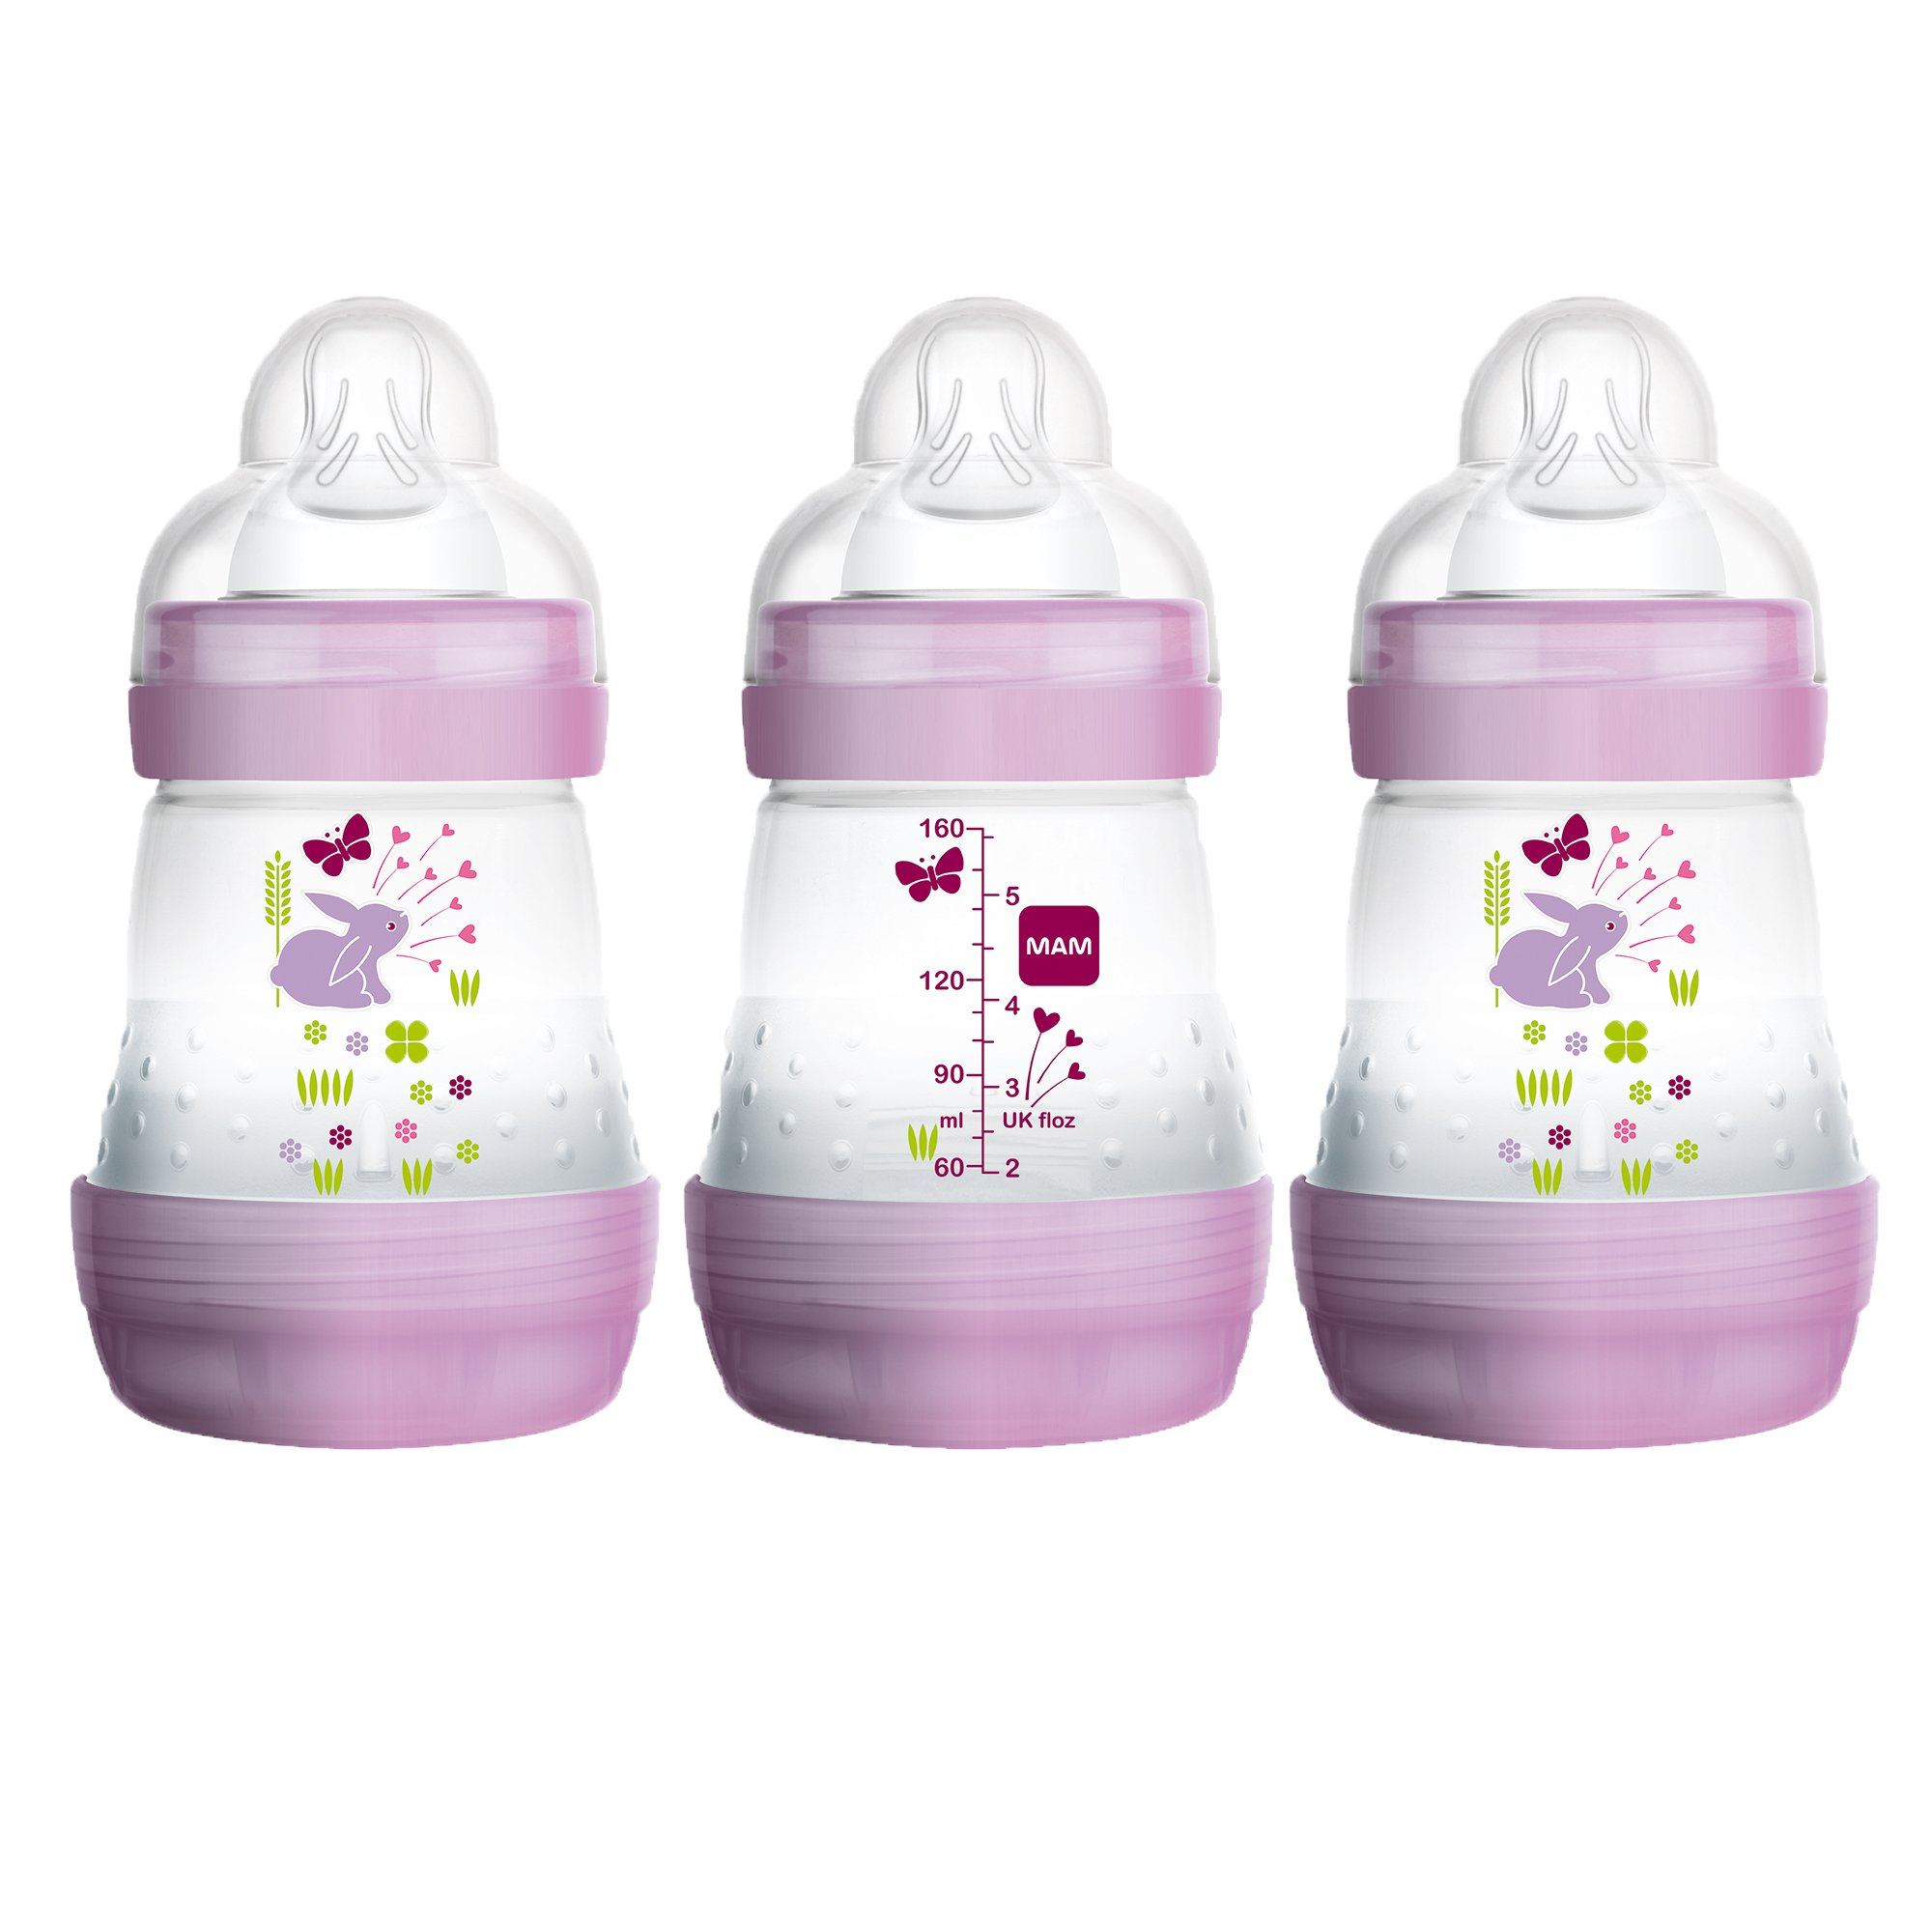 MAM Baby Bottles for Breastfed Babies, MAM Bottles Anti Colic, Girl, 5 Ounces, 3-Count